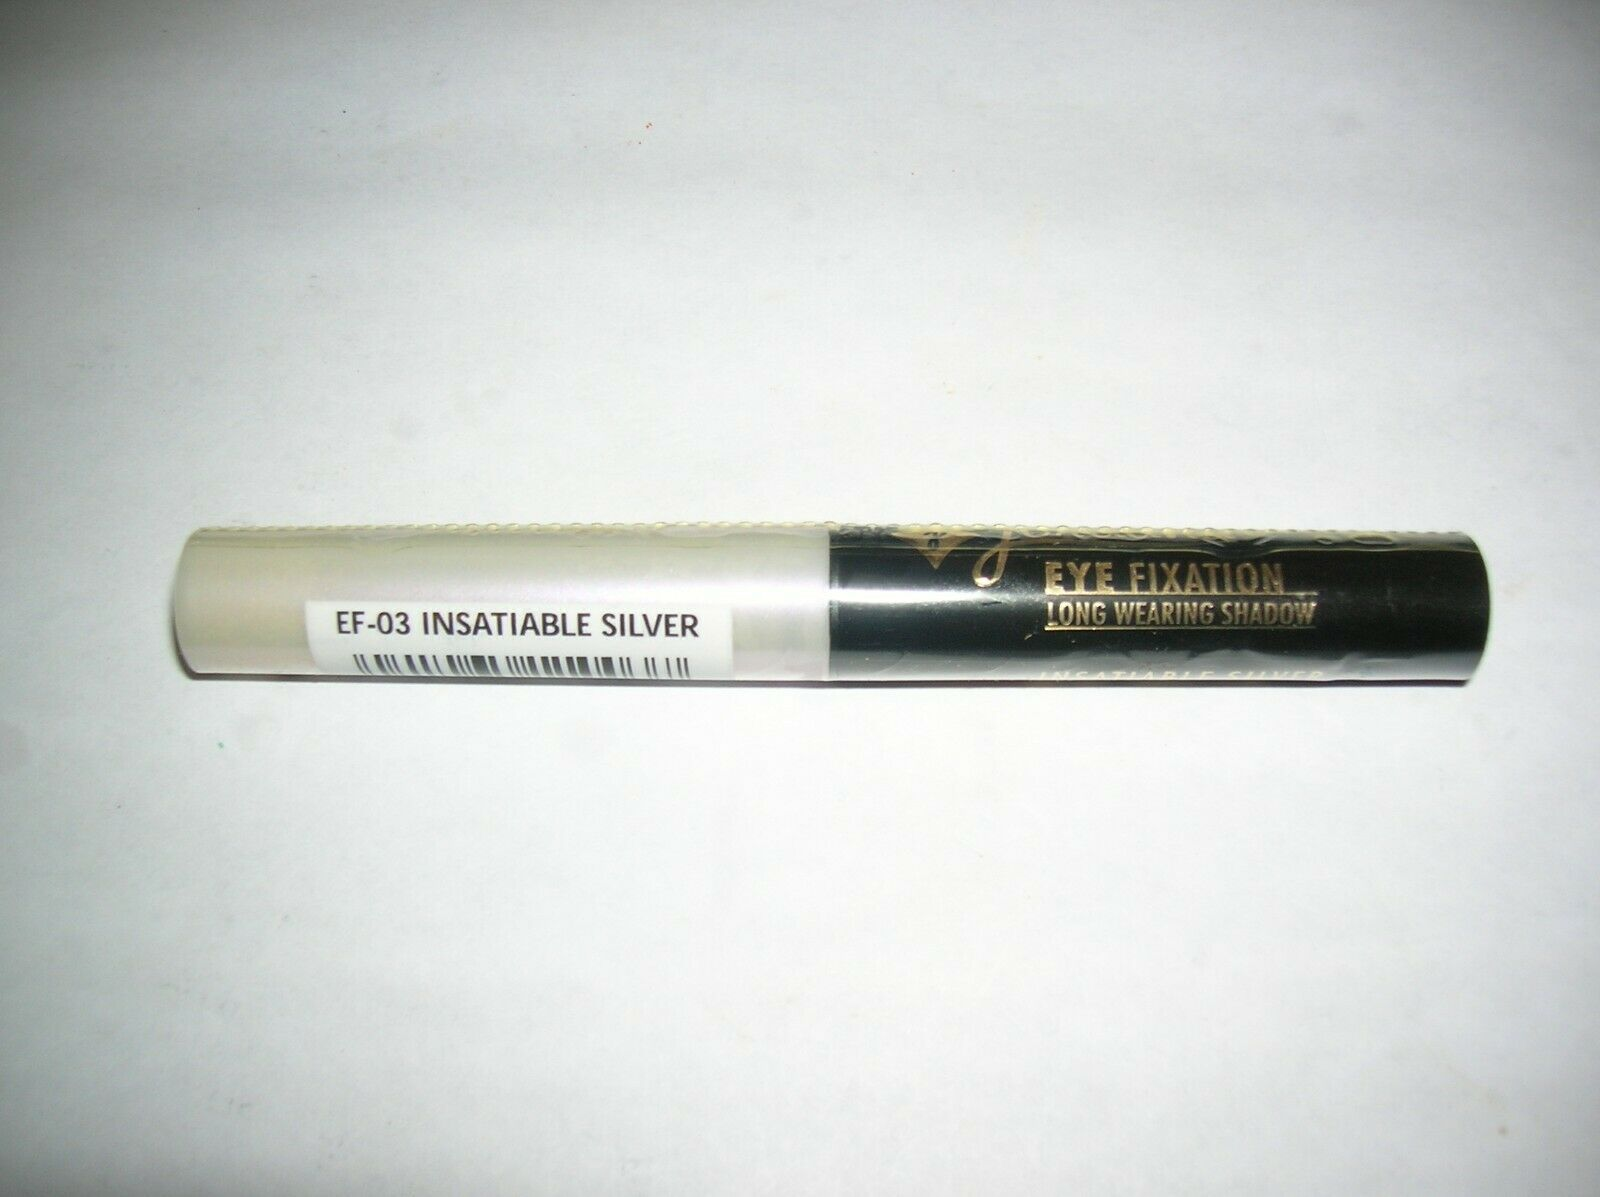 Primary image for Jordana Eye Fixation Long Wearing Shadow EF-03 Insatiable Silver